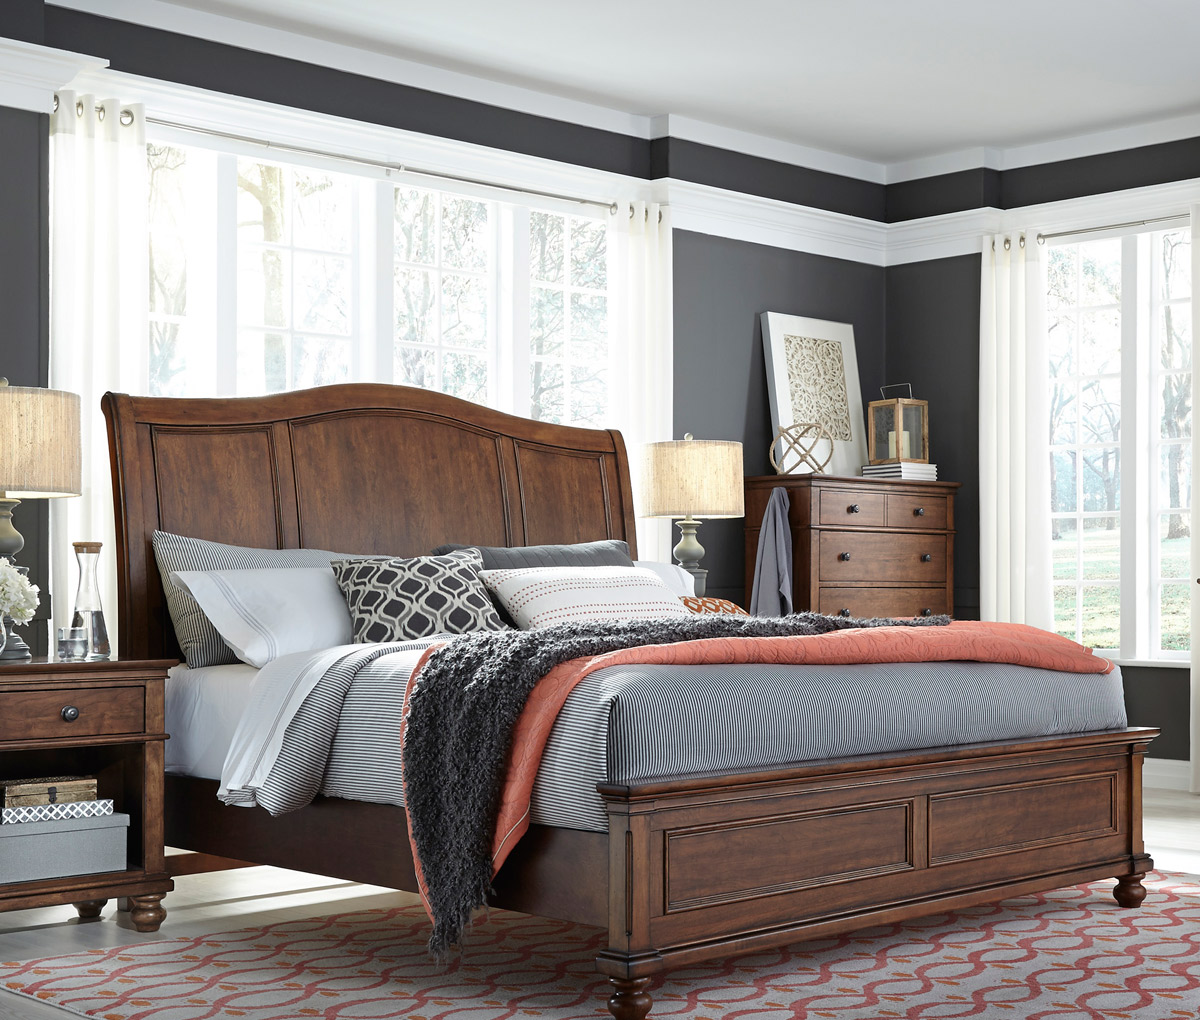 Decorating With Brown And Gray A Pairing That May Surprise You Schneiderman 39 S The Blog